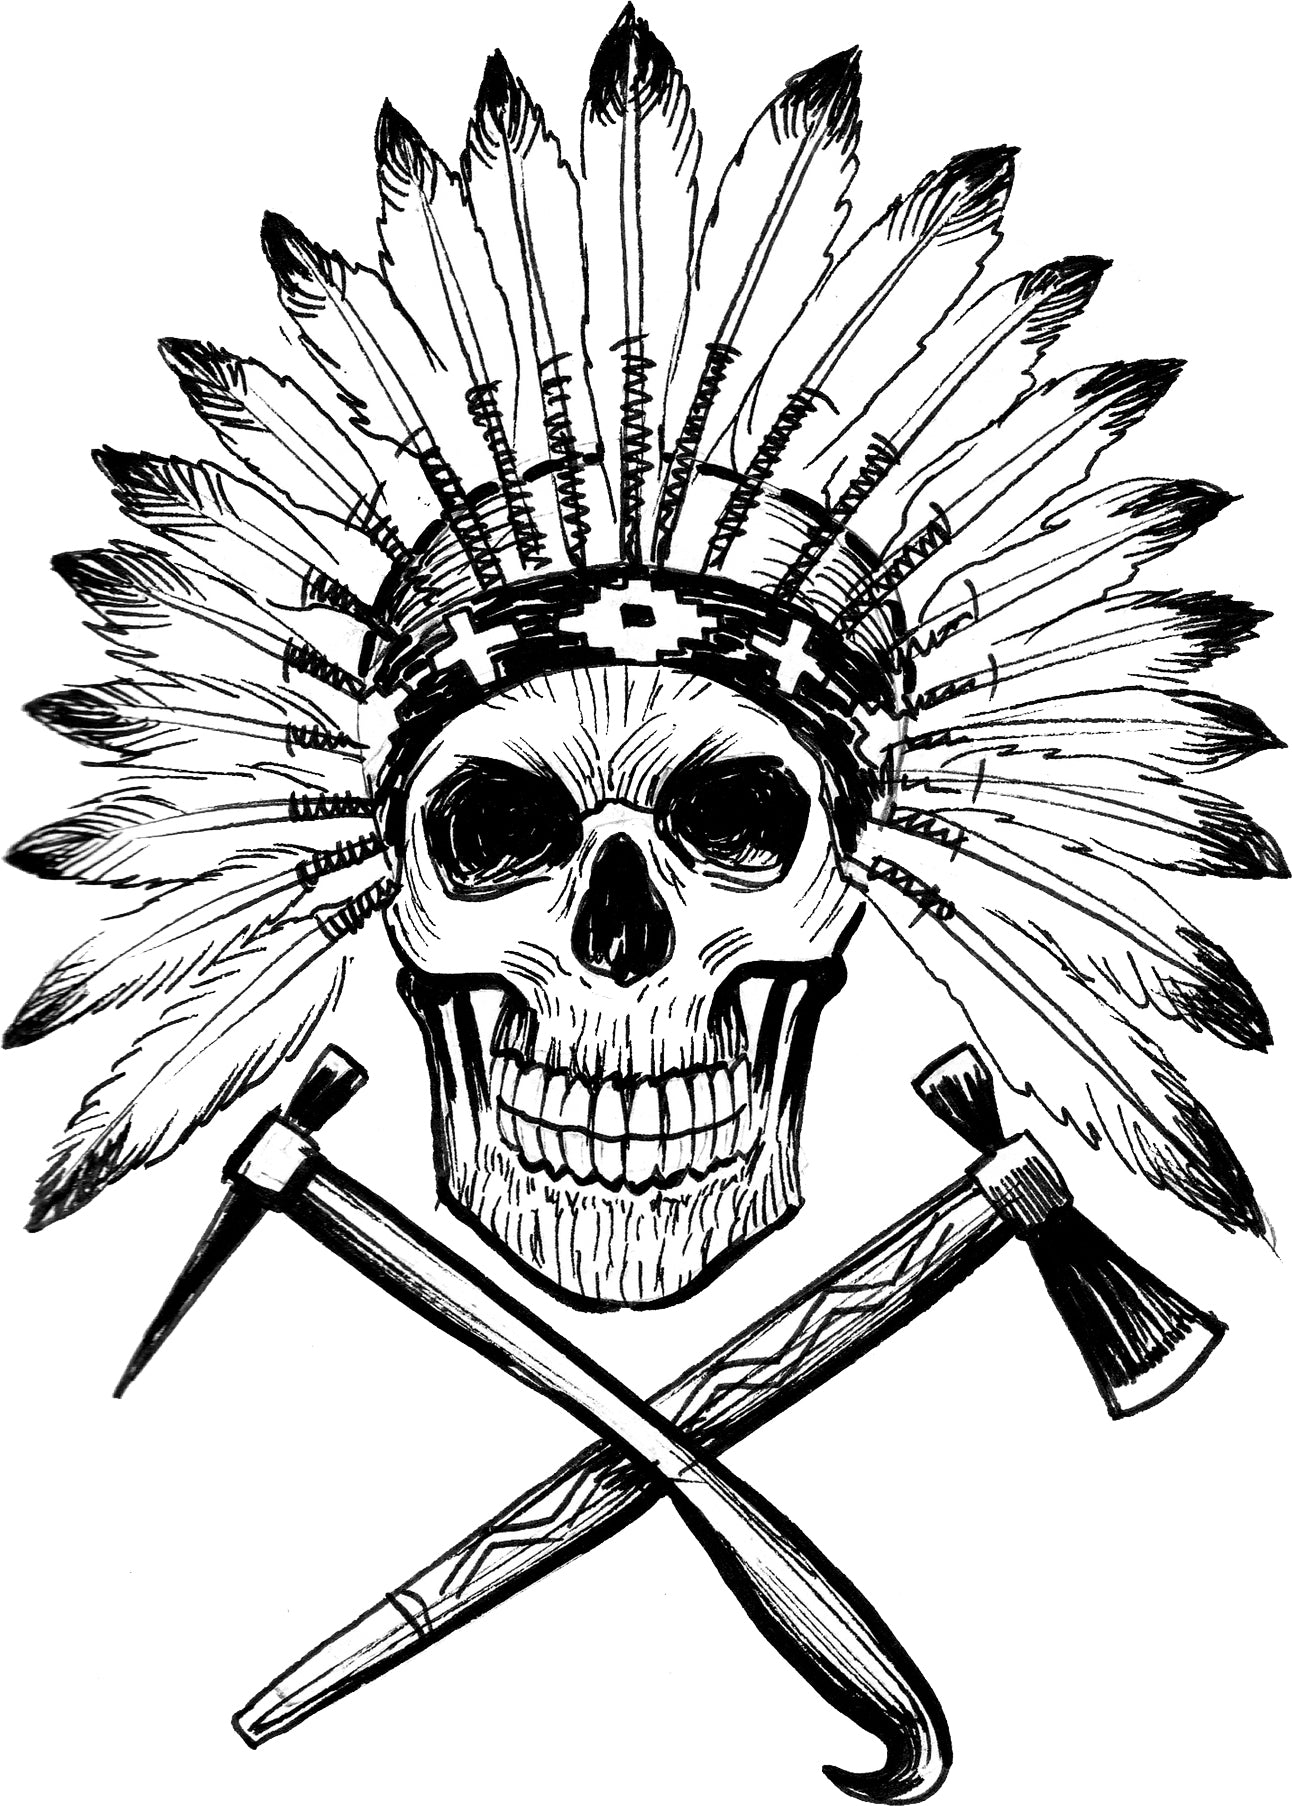 Pen Sketch Black and White Skull with Feather Headdress Art Vinyl Decal Sticker